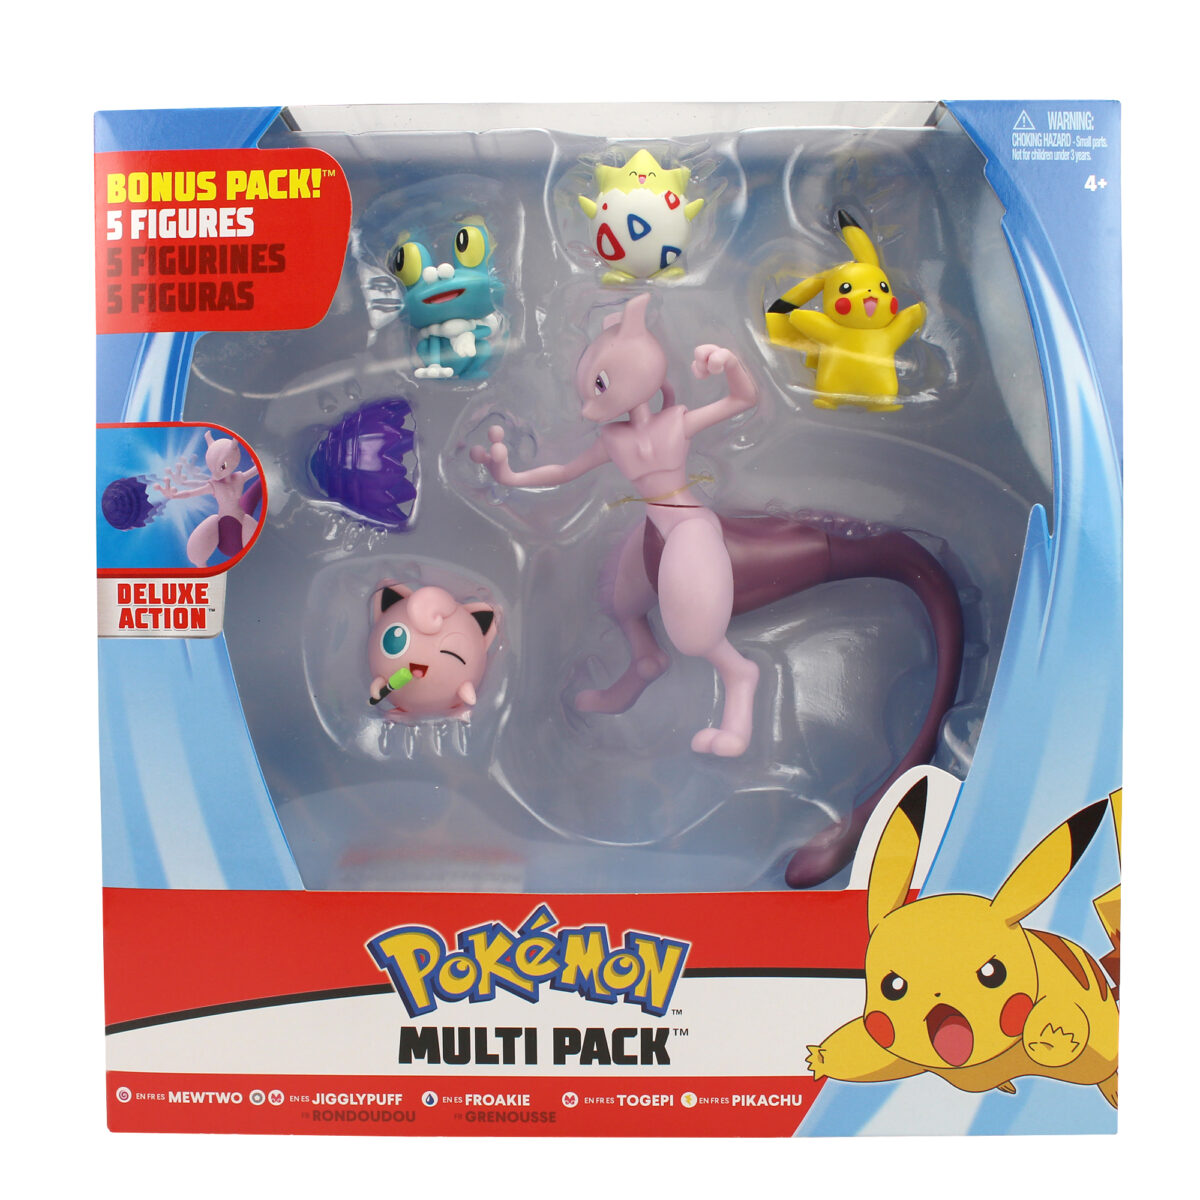 Another Pokemon Battle Pack